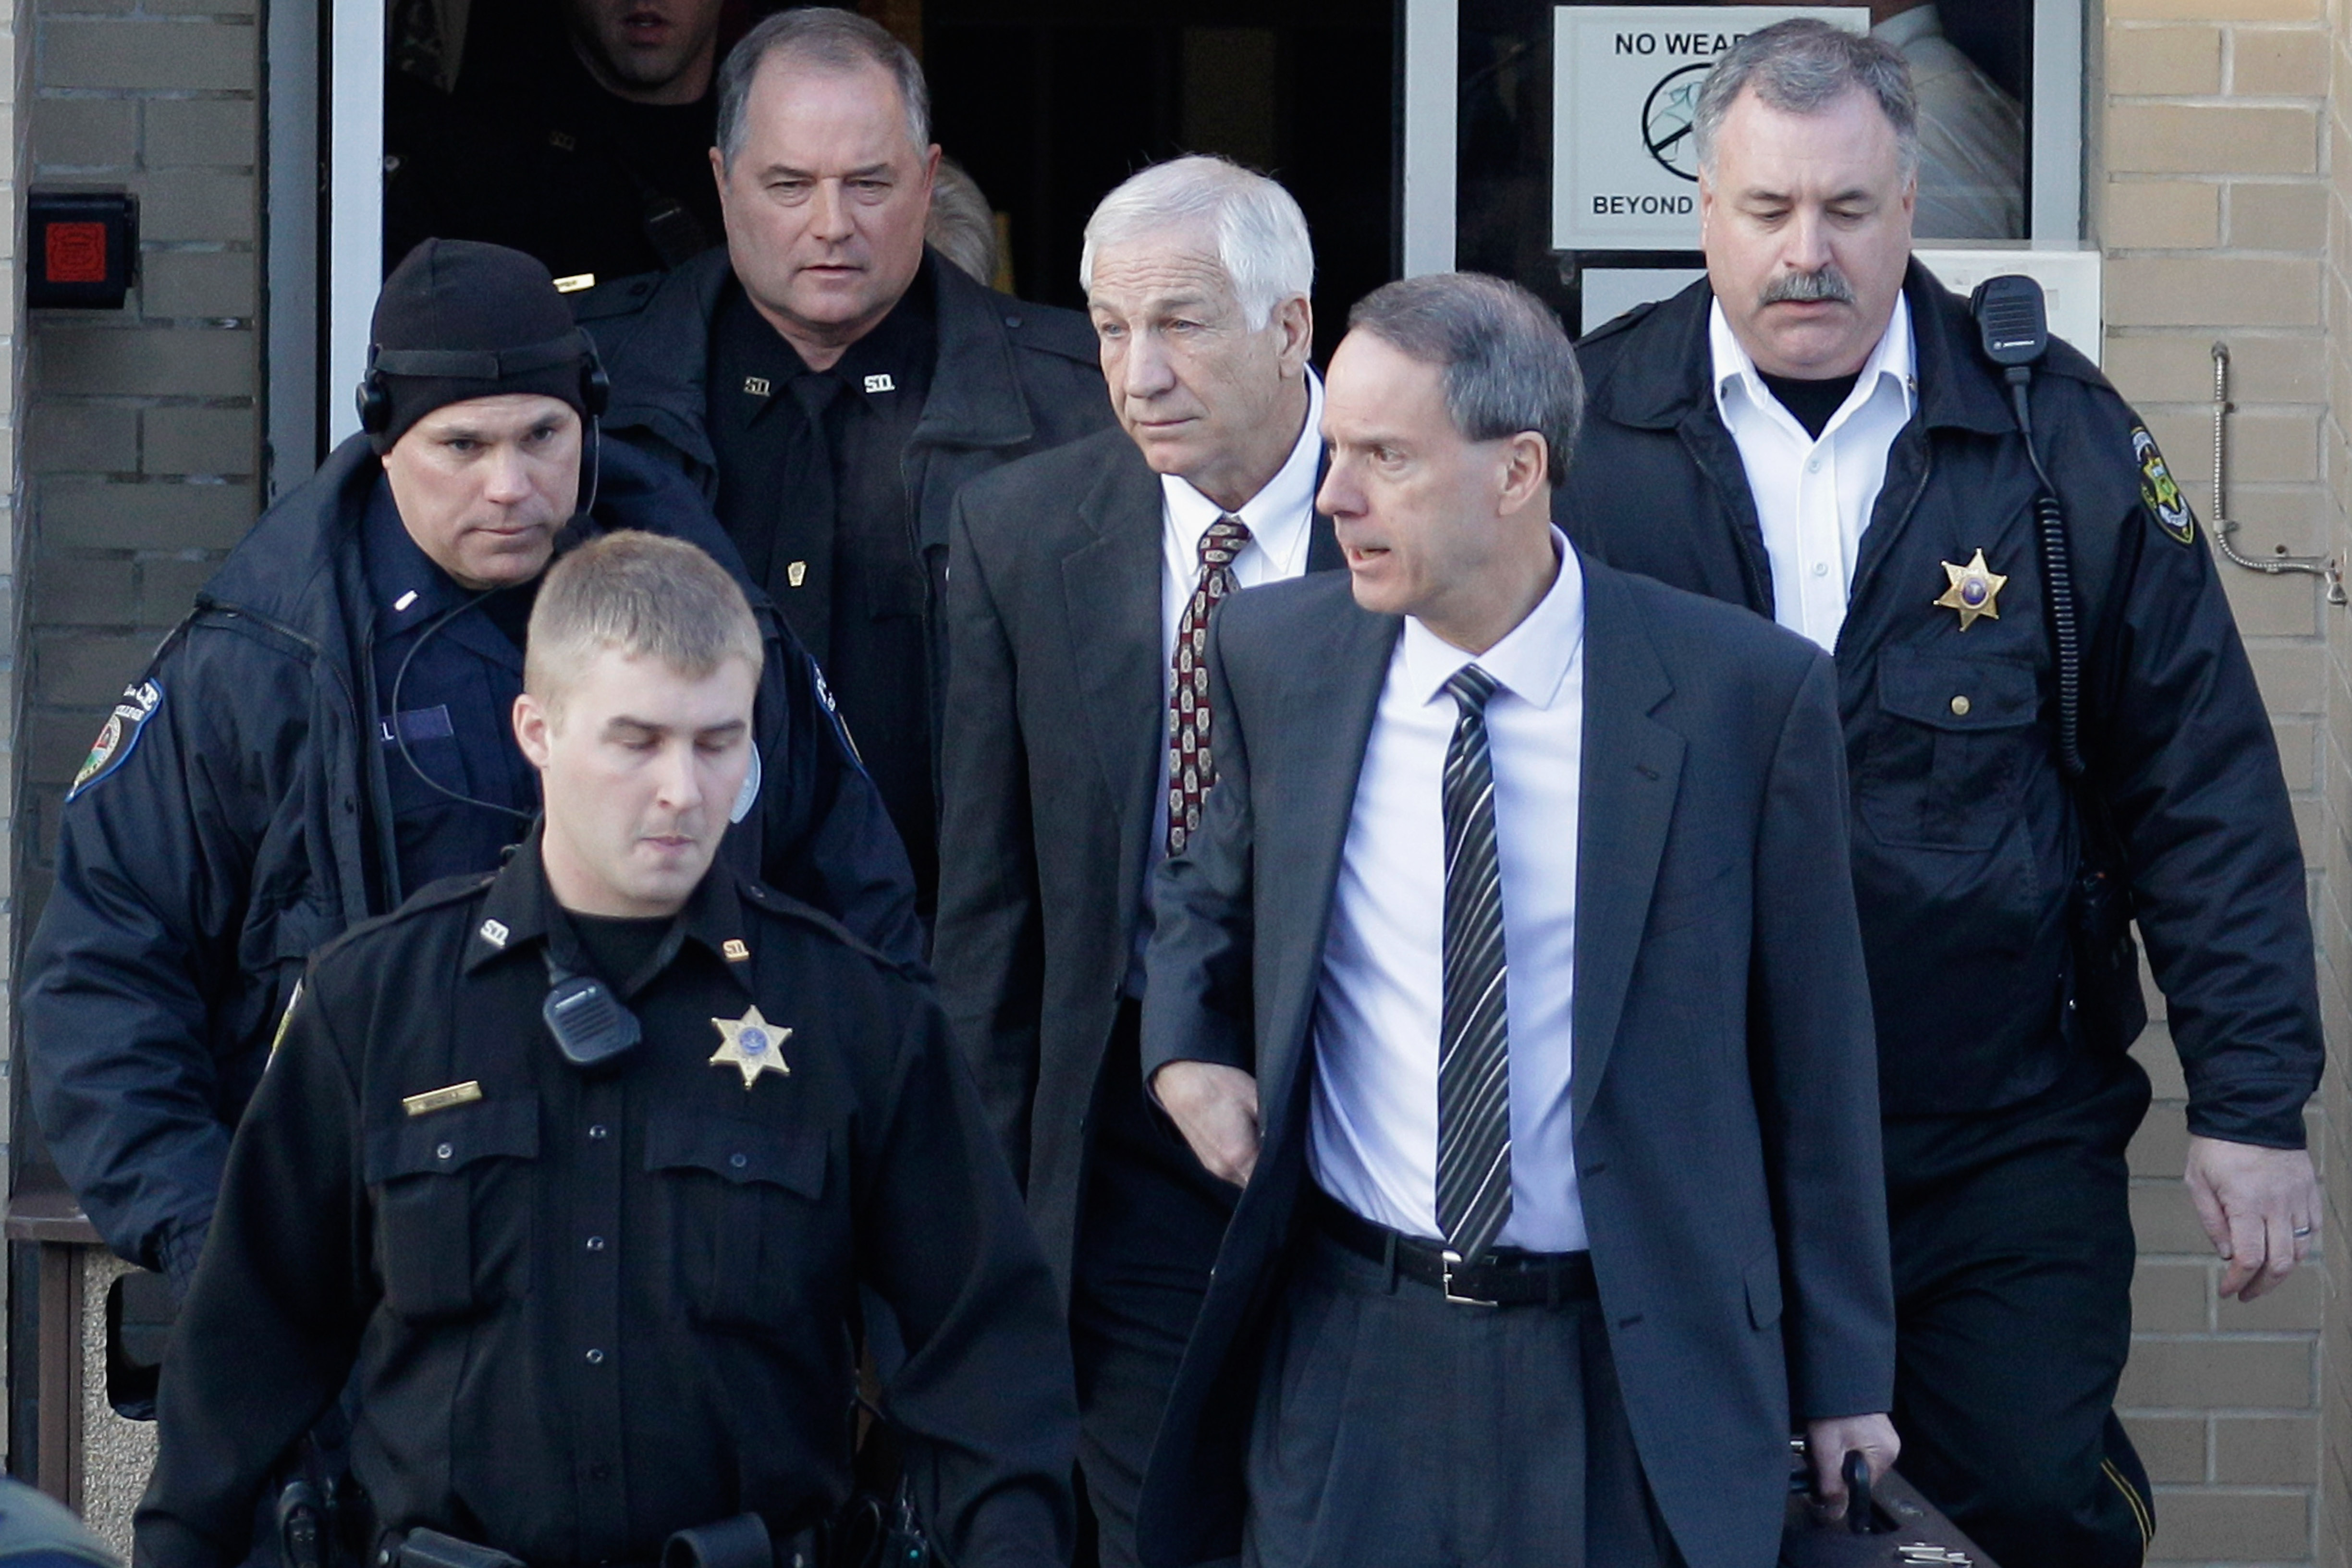 The trial for former Penn State assistant football coach Jerry Sandusky begins Tuesday. (Getty Images)